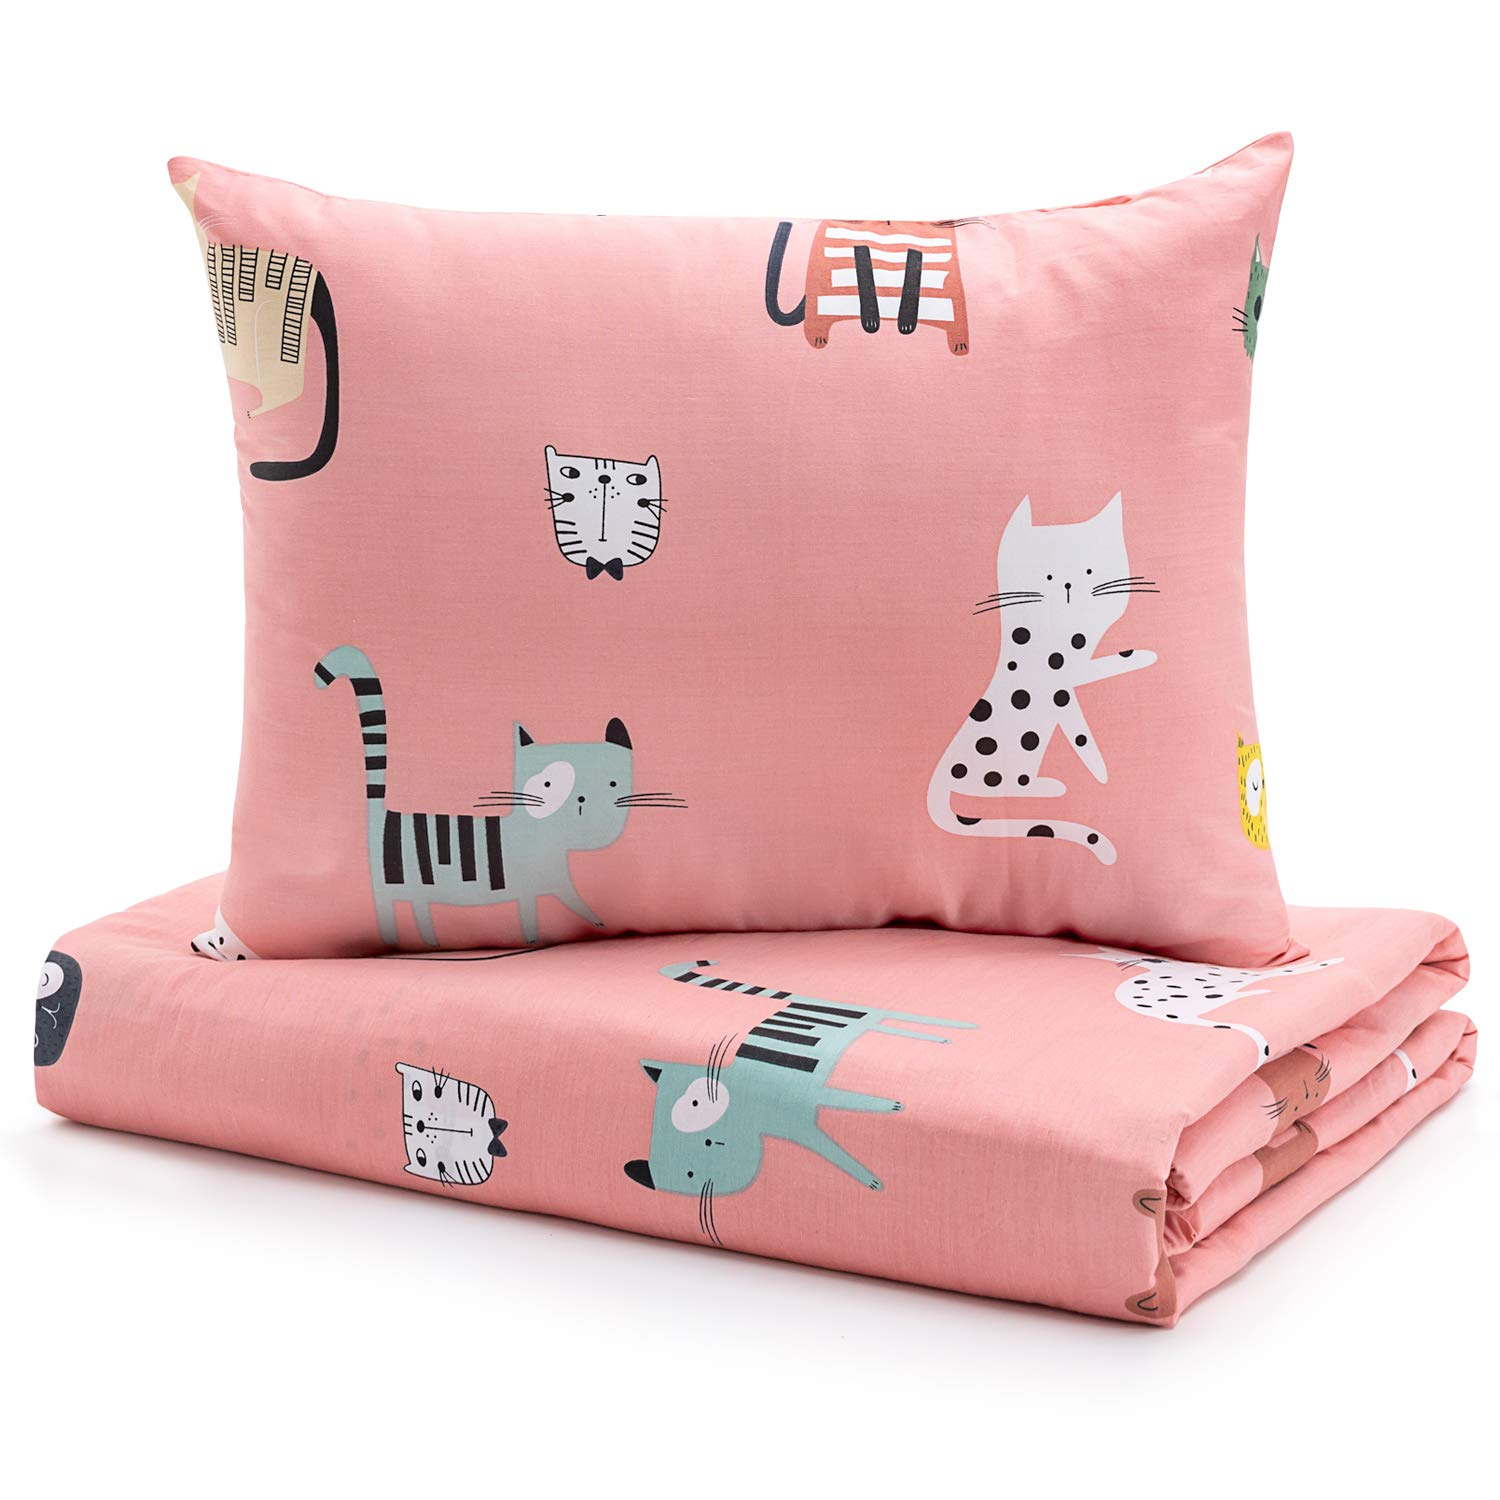 Skin-Friendly 2 Pieces Toddler Bedding Set Gift for Boys and Girls Pink Unicorn Sivio Kids Duvet Cover Set for Kids Weighted Blanket 100/% Cotton 36 x 48 Inch